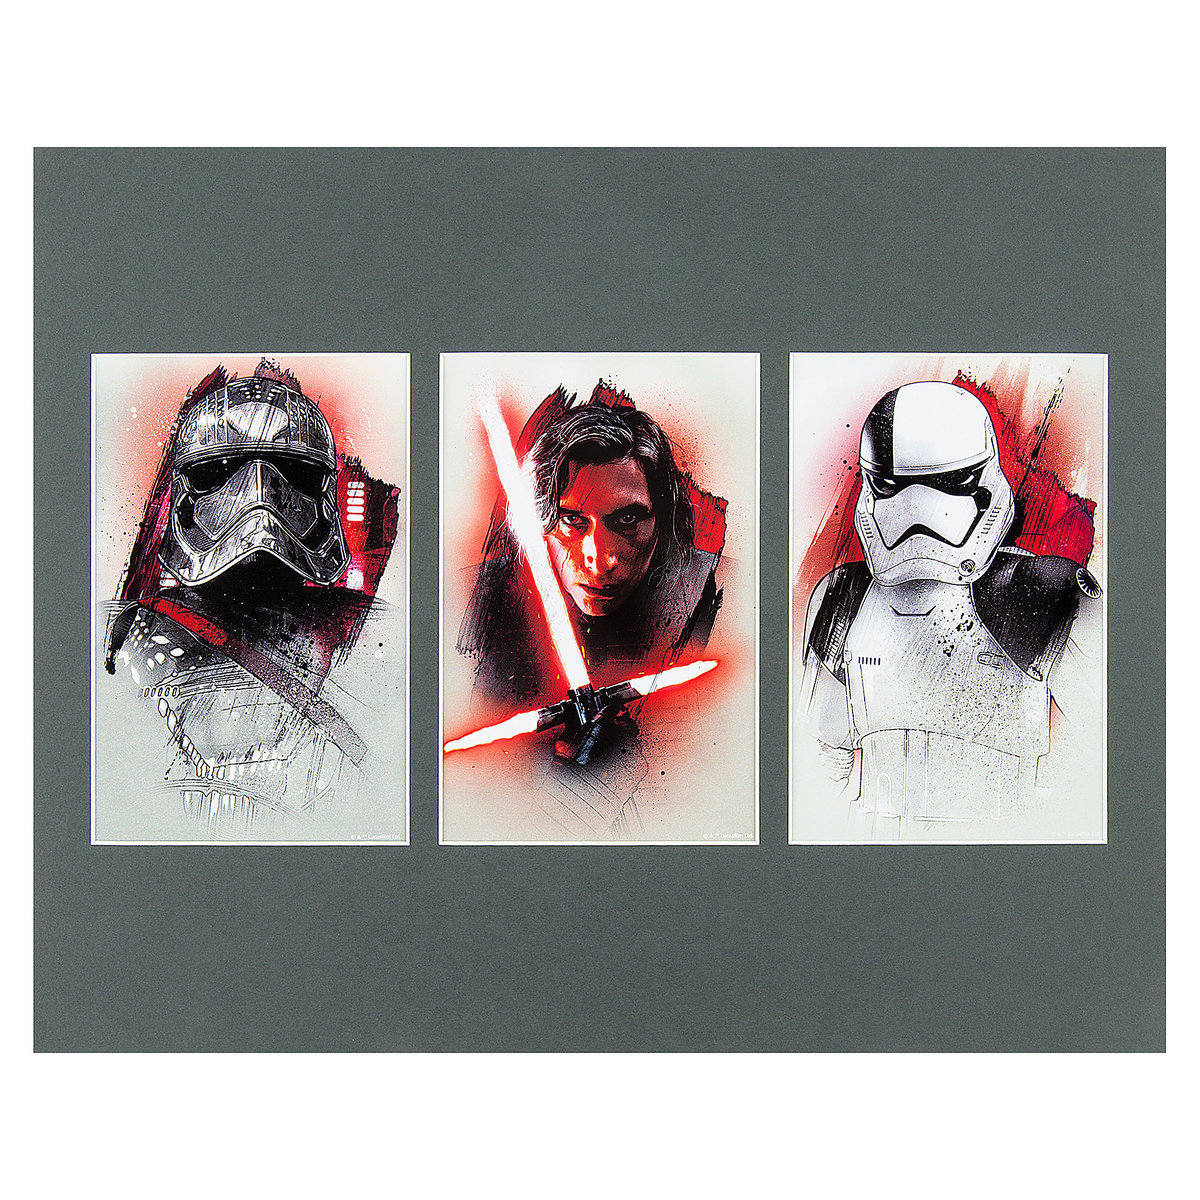 TLJ The First Order Deluxe Art Print